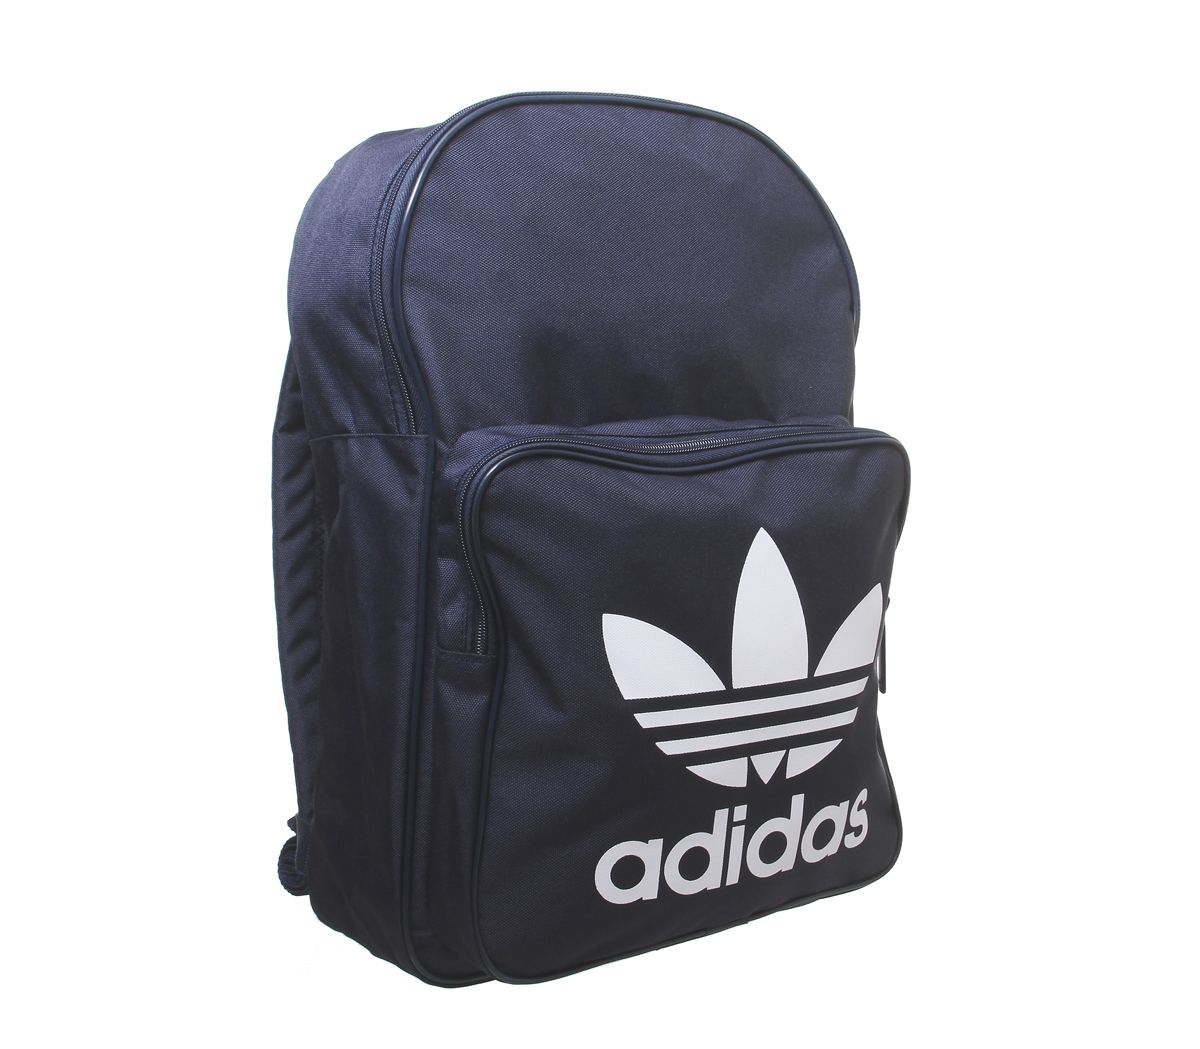 reputable site c347a beacd adidas Classic Trefoil Backpack Collegiate Navy White - Accessories